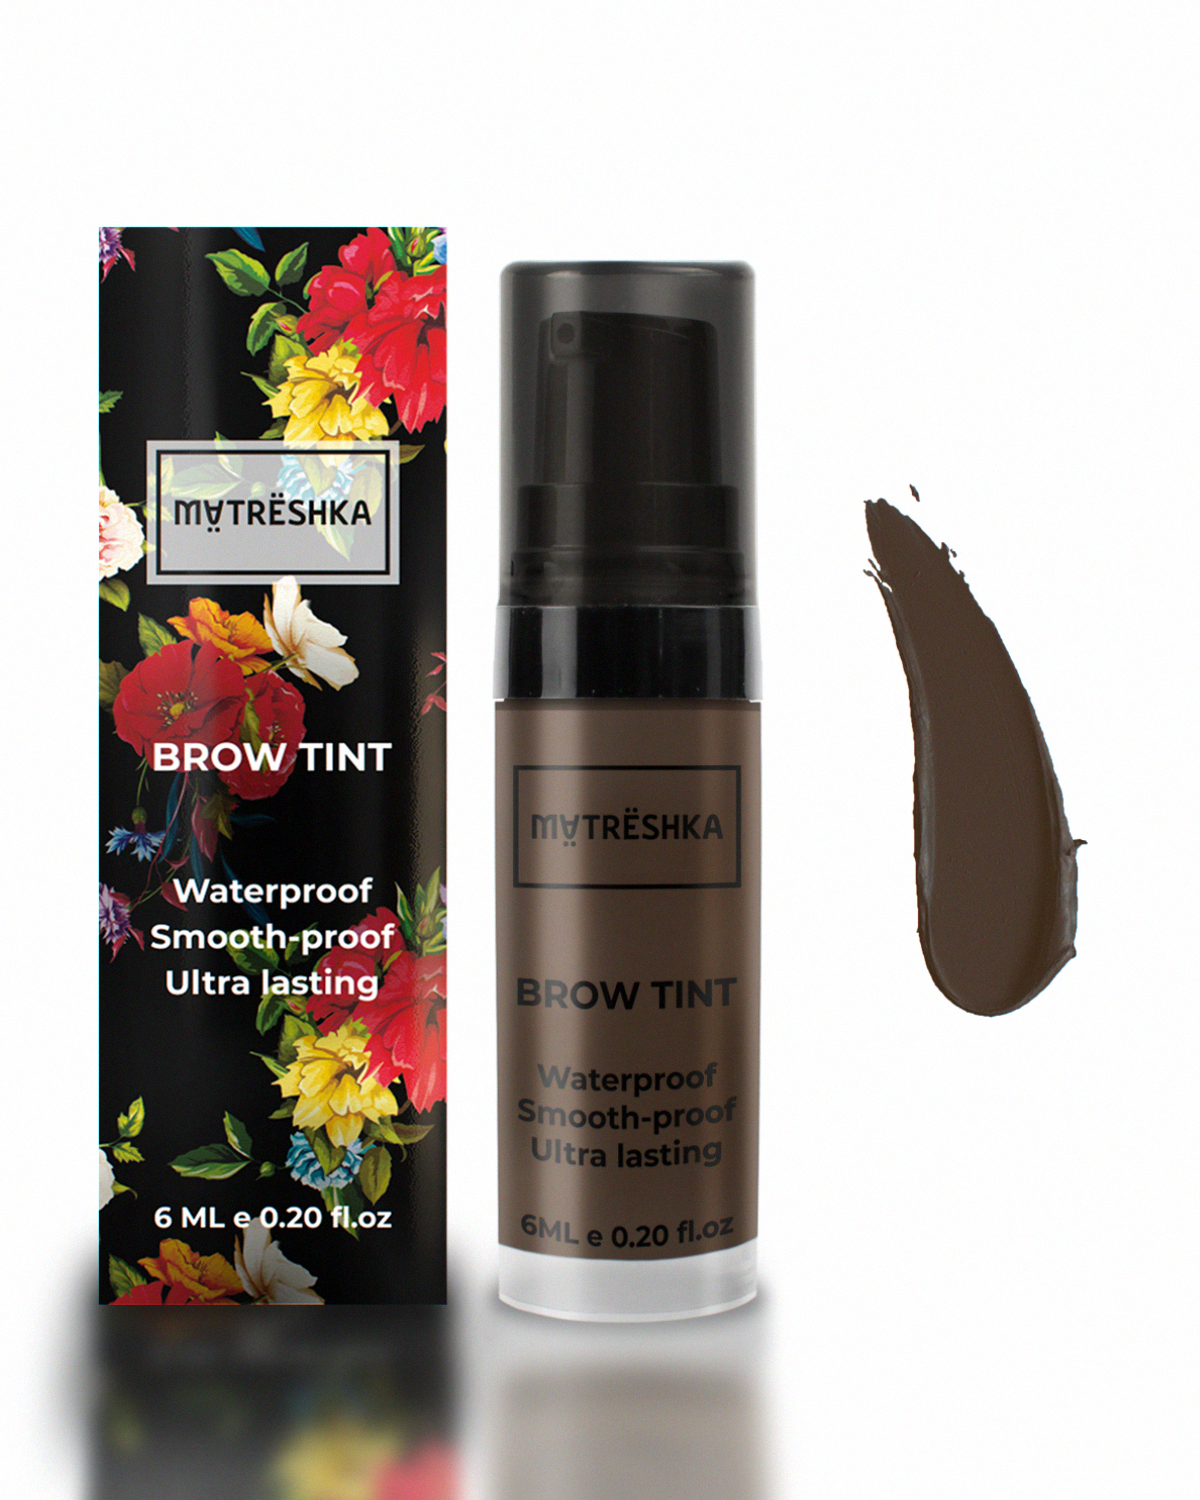 brow-tint_flakon_korobka_dark-brown_Matreshka